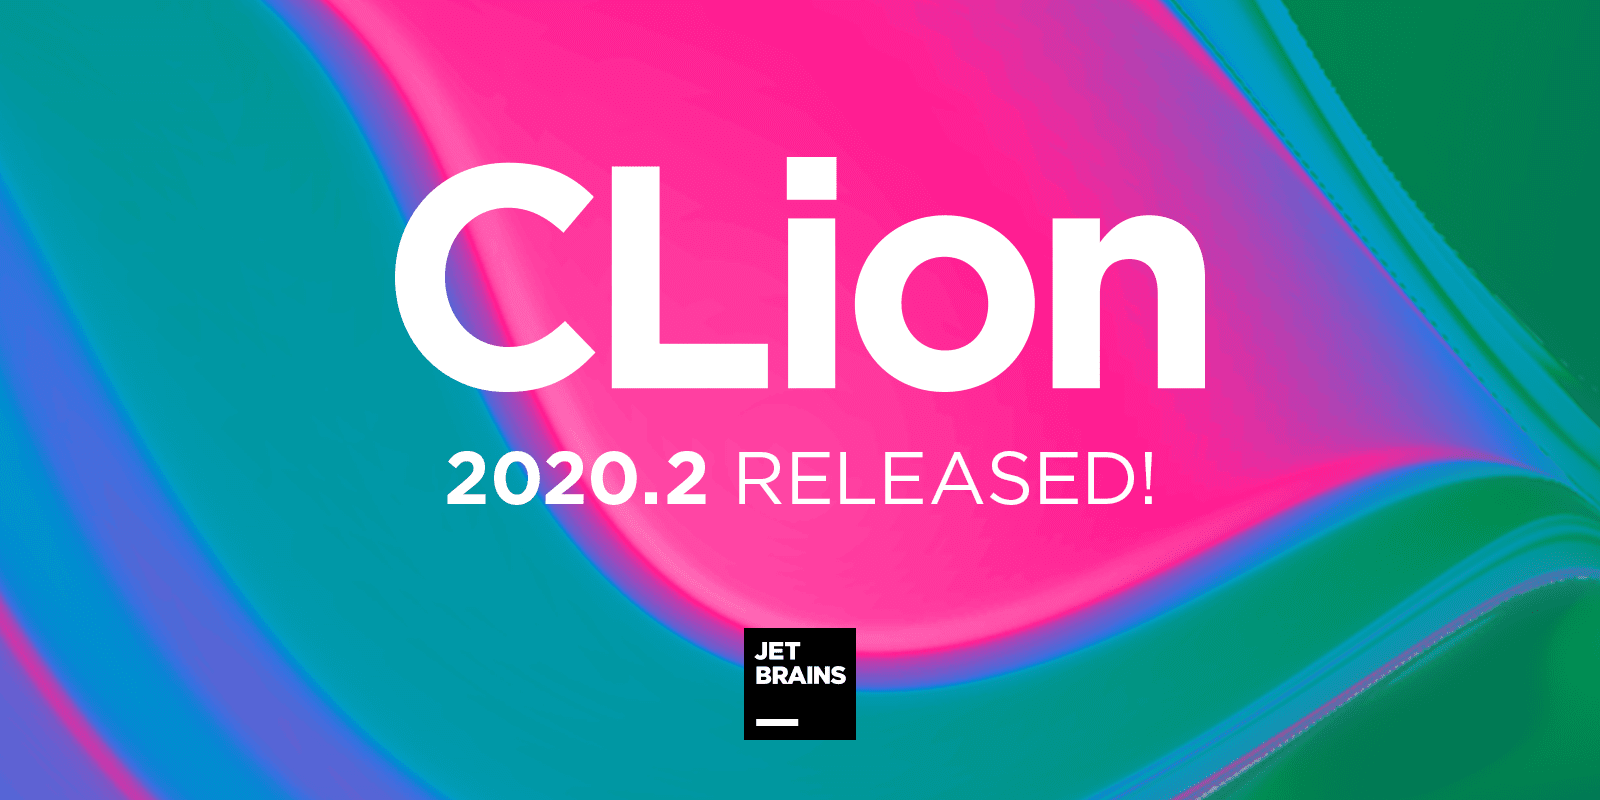 CLion 2020.2 released